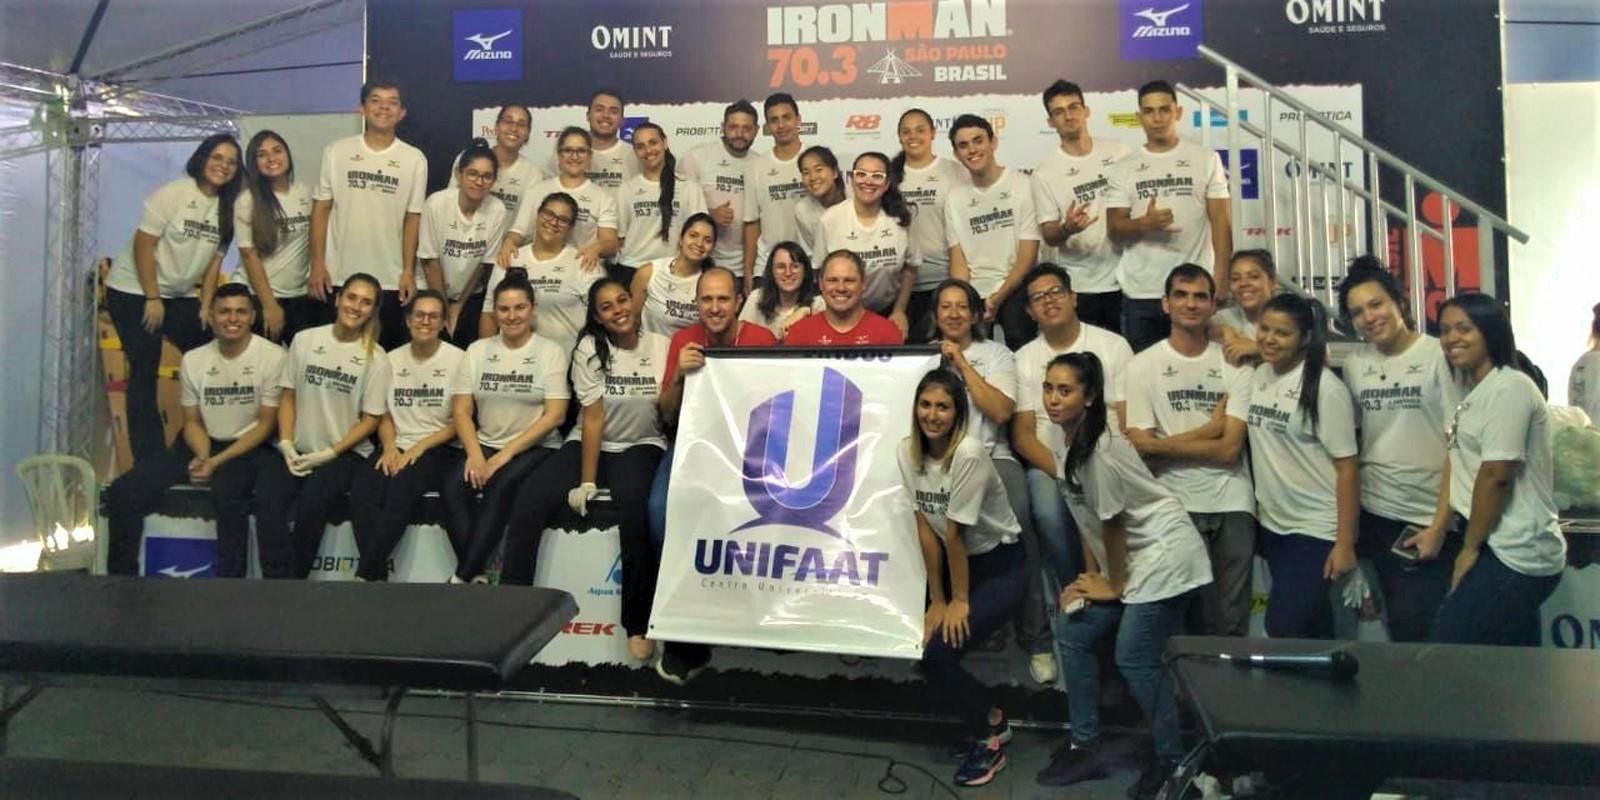 Alunos de Fisioterapia da UNIFAAT atuam no IronMan 70.3